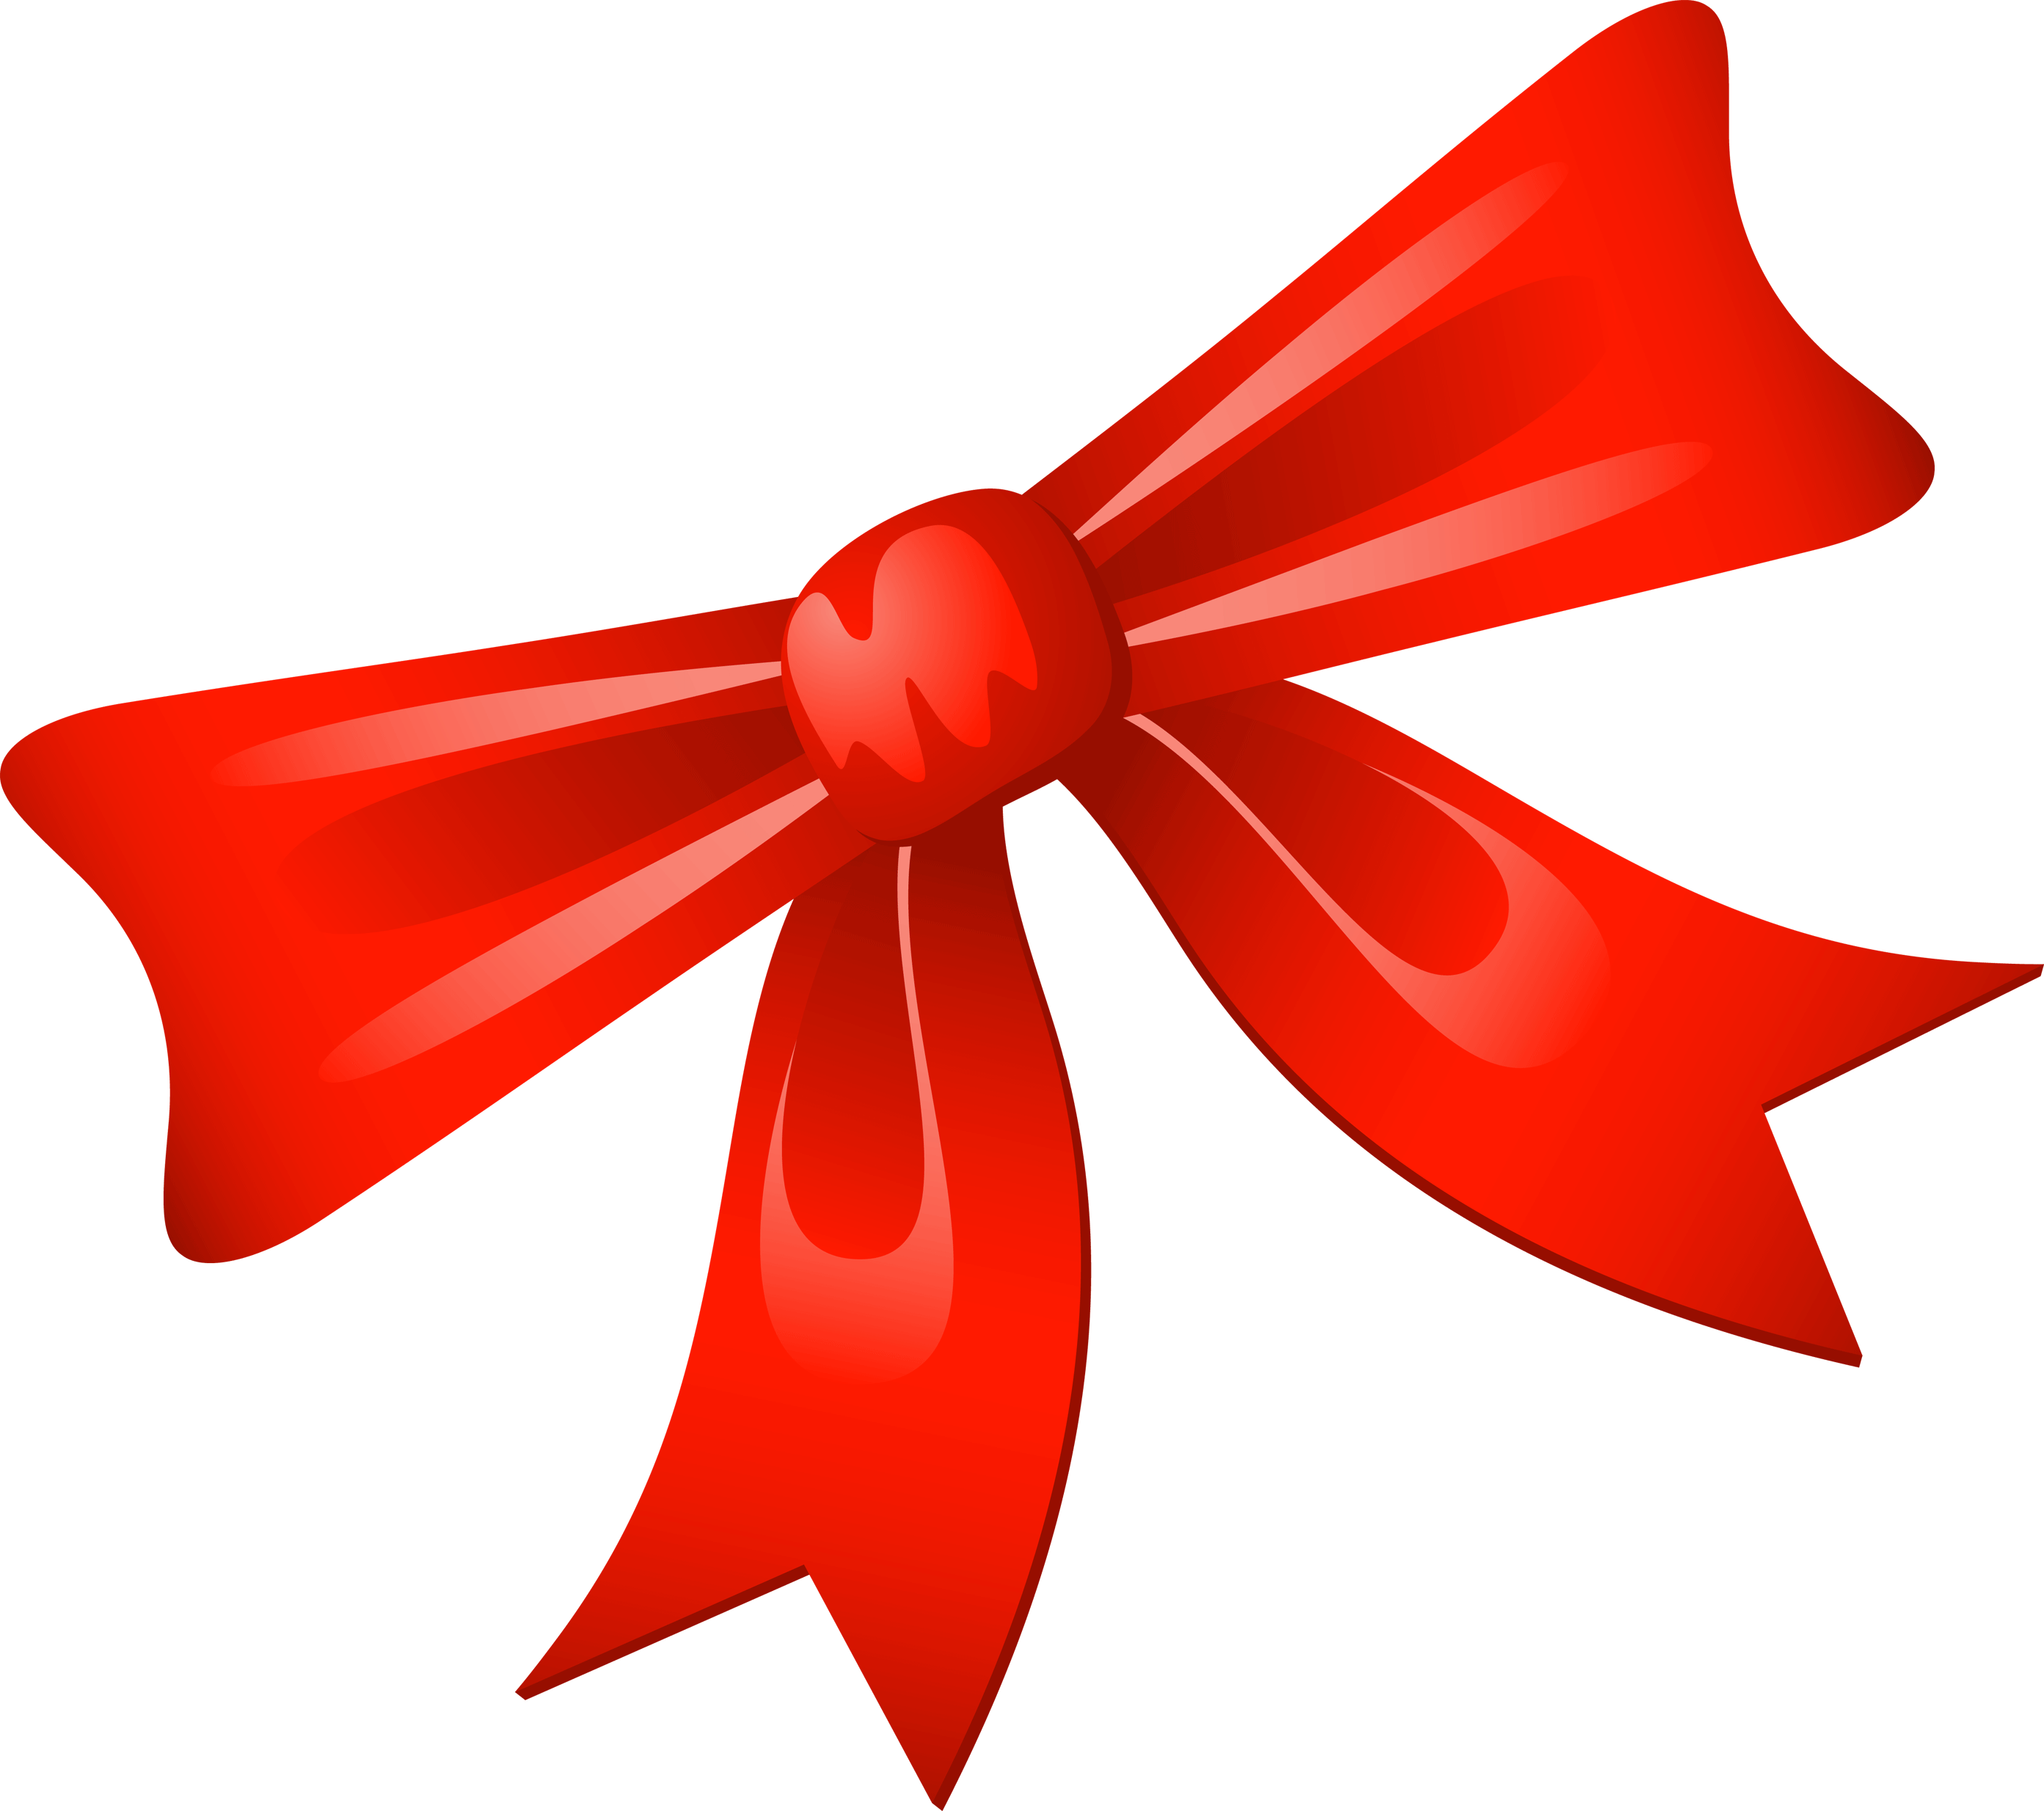 Christmas bows clipart image free download Clipart christmas flower and ribbon on animal head - ClipartFest image free download